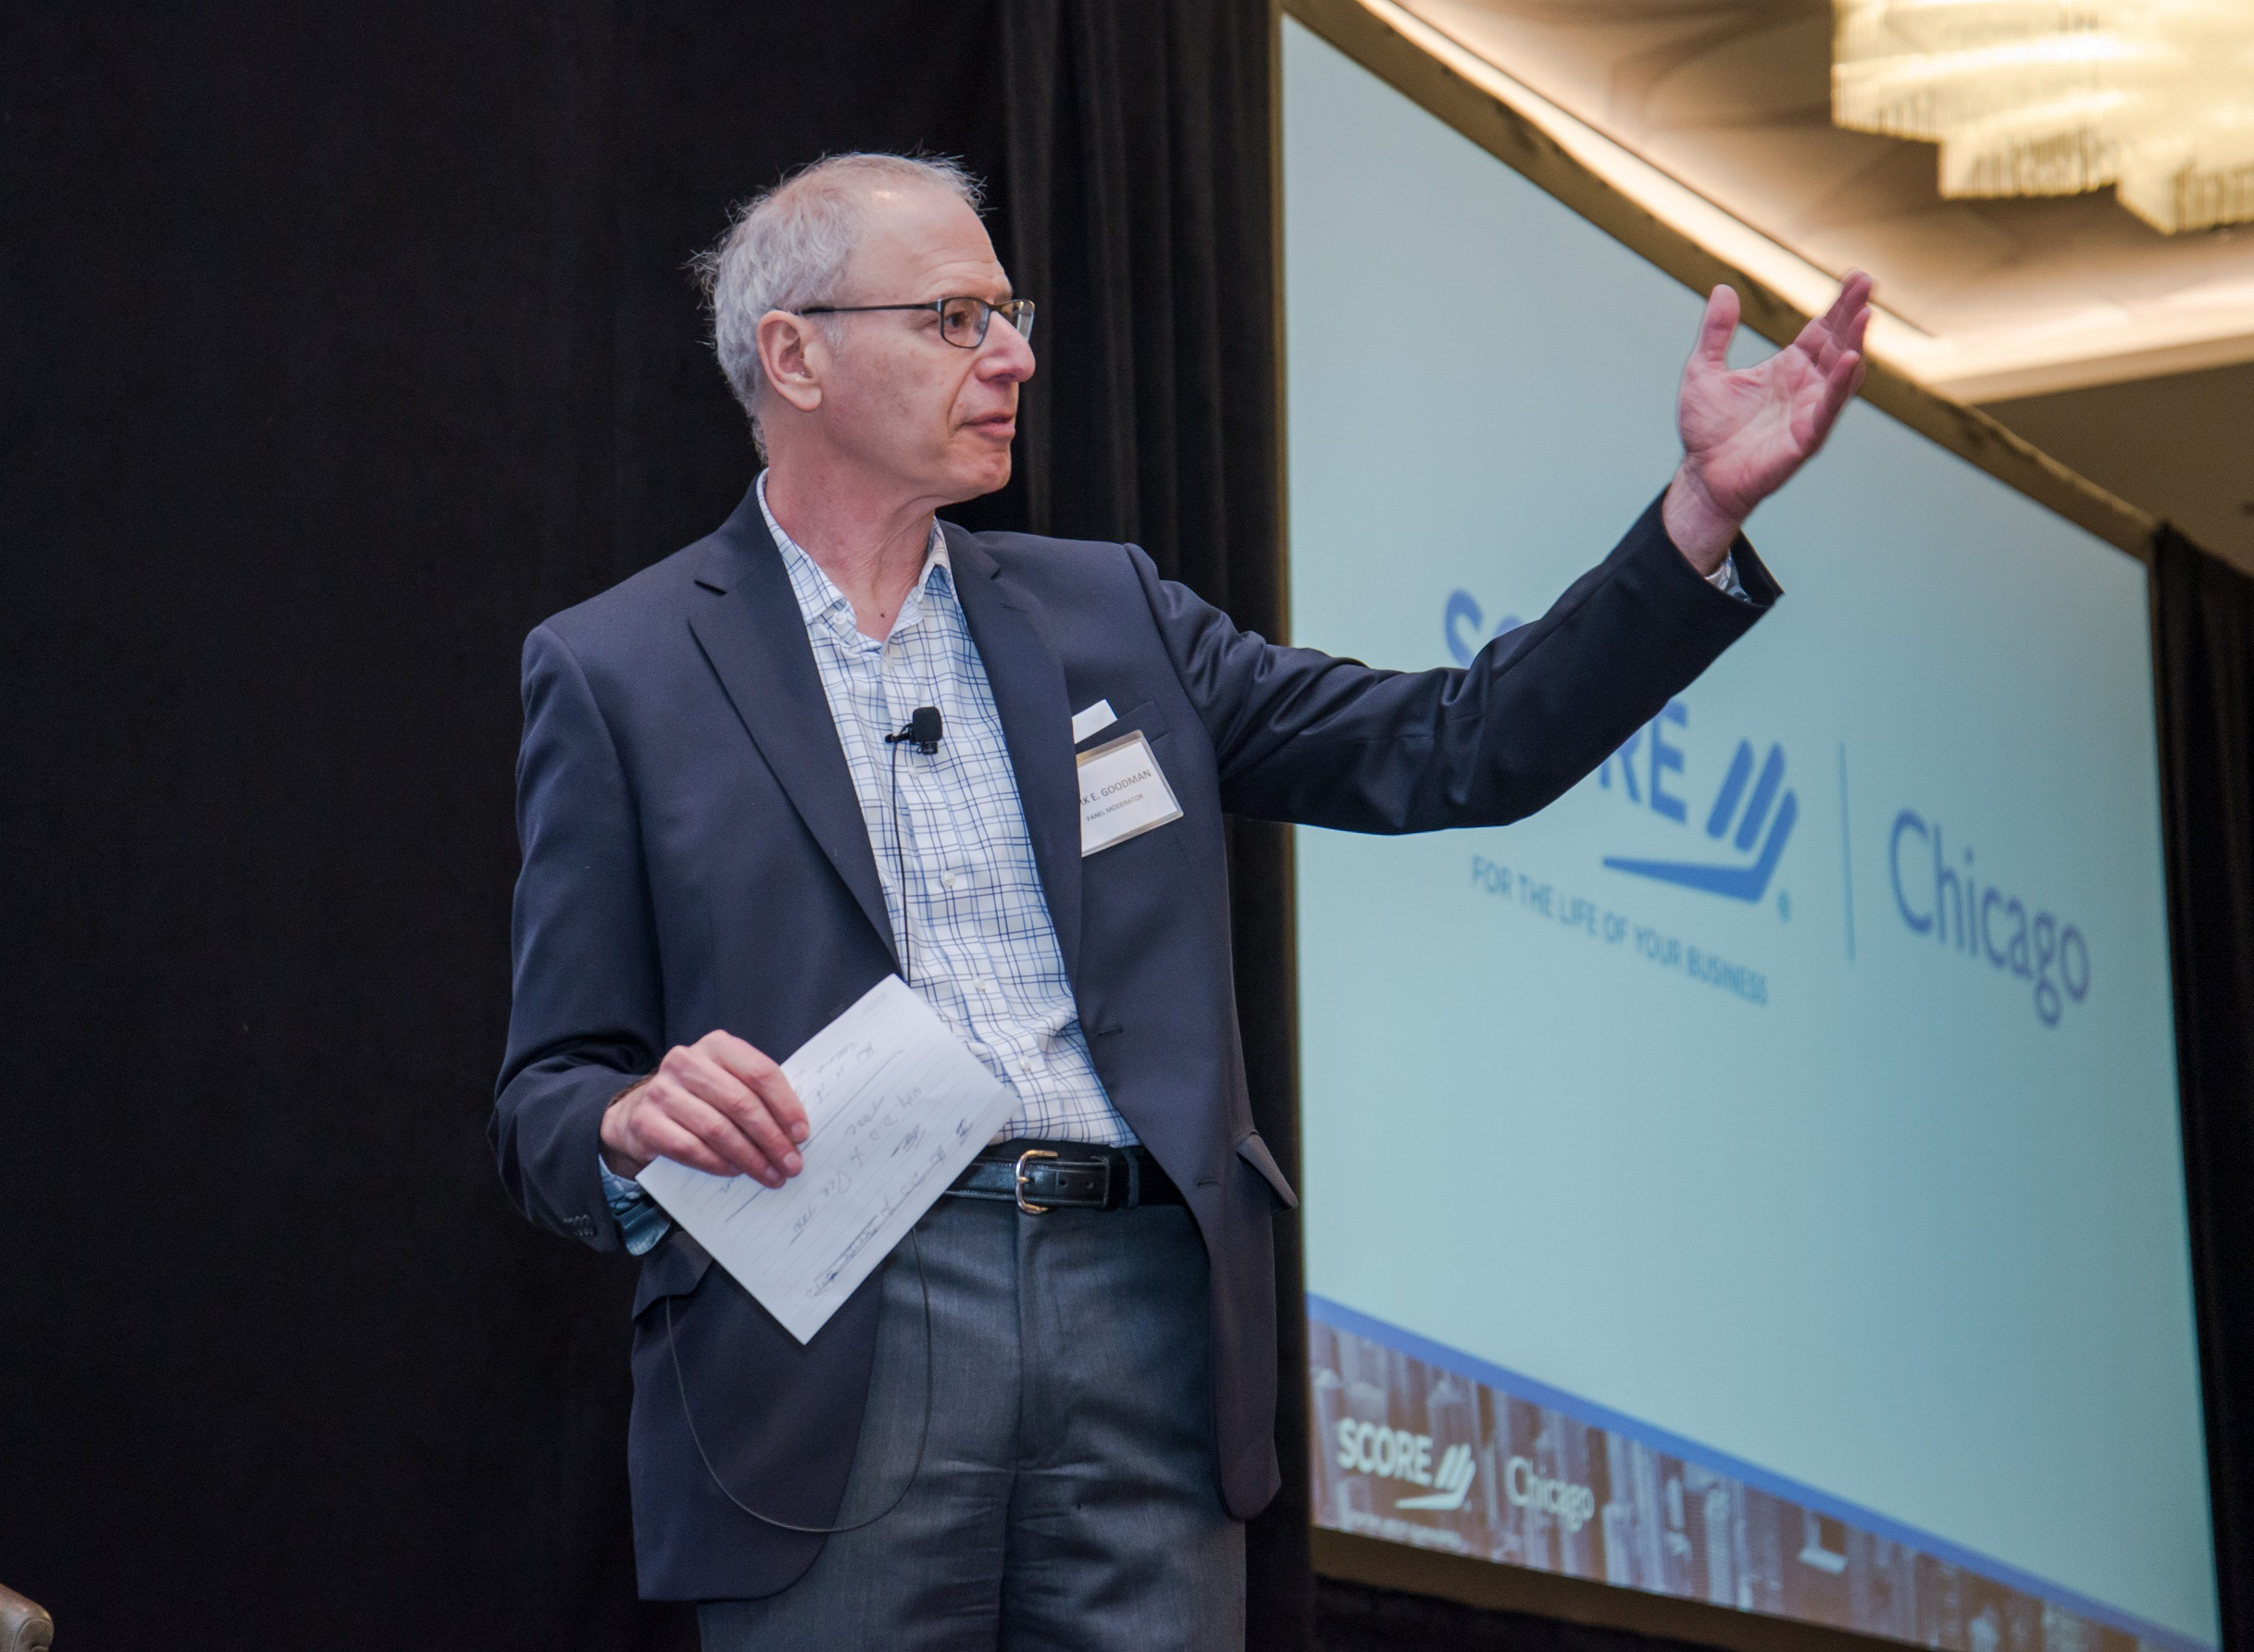 Images from SCORE Business Forum – scroll through the pictures